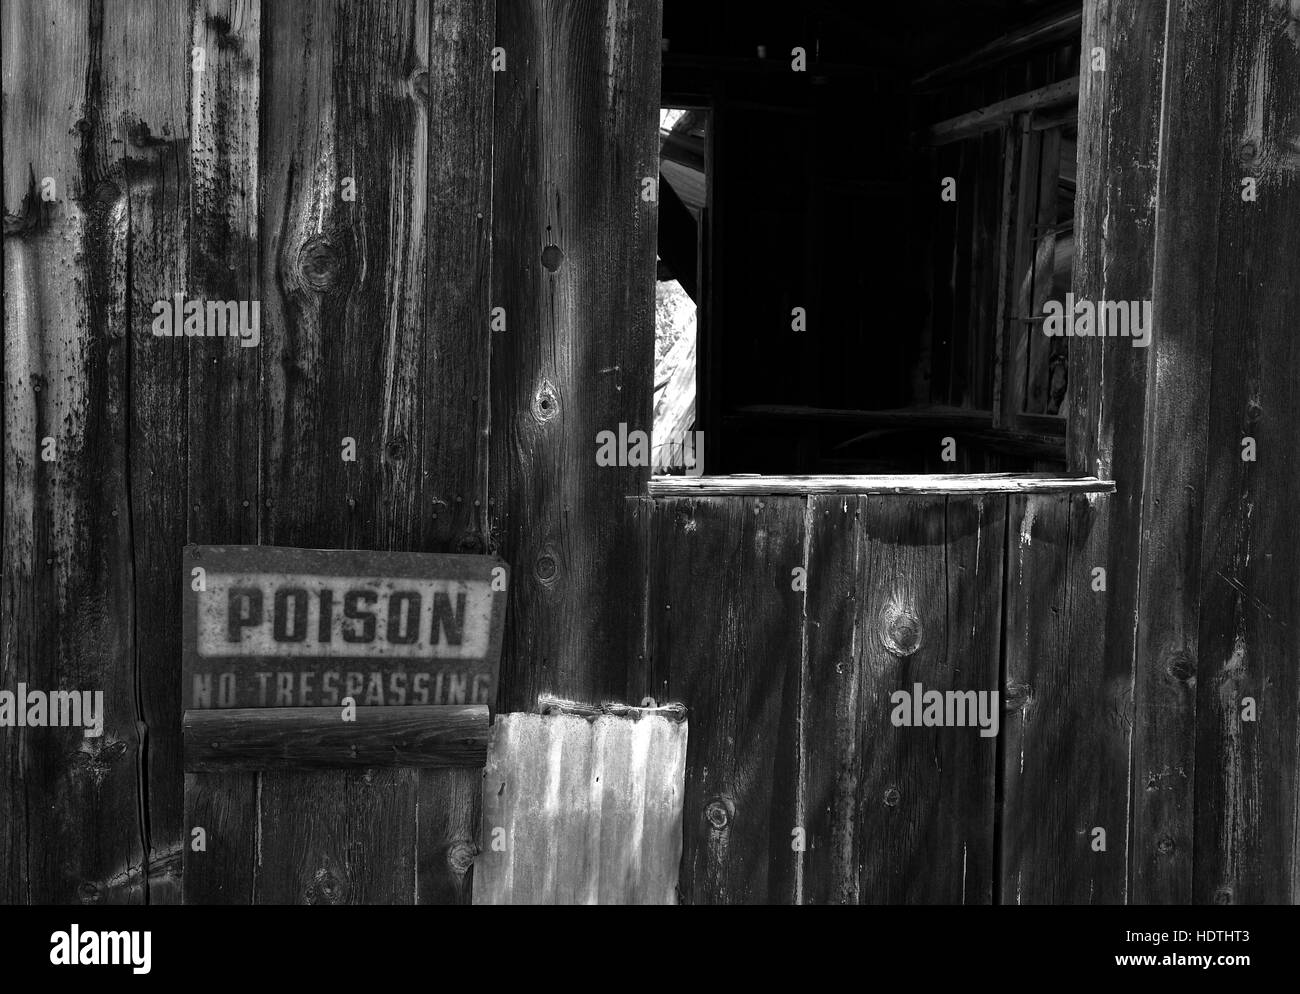 Poison sign on the assay shack at an abandoned mine in Arizona. - Stock Image